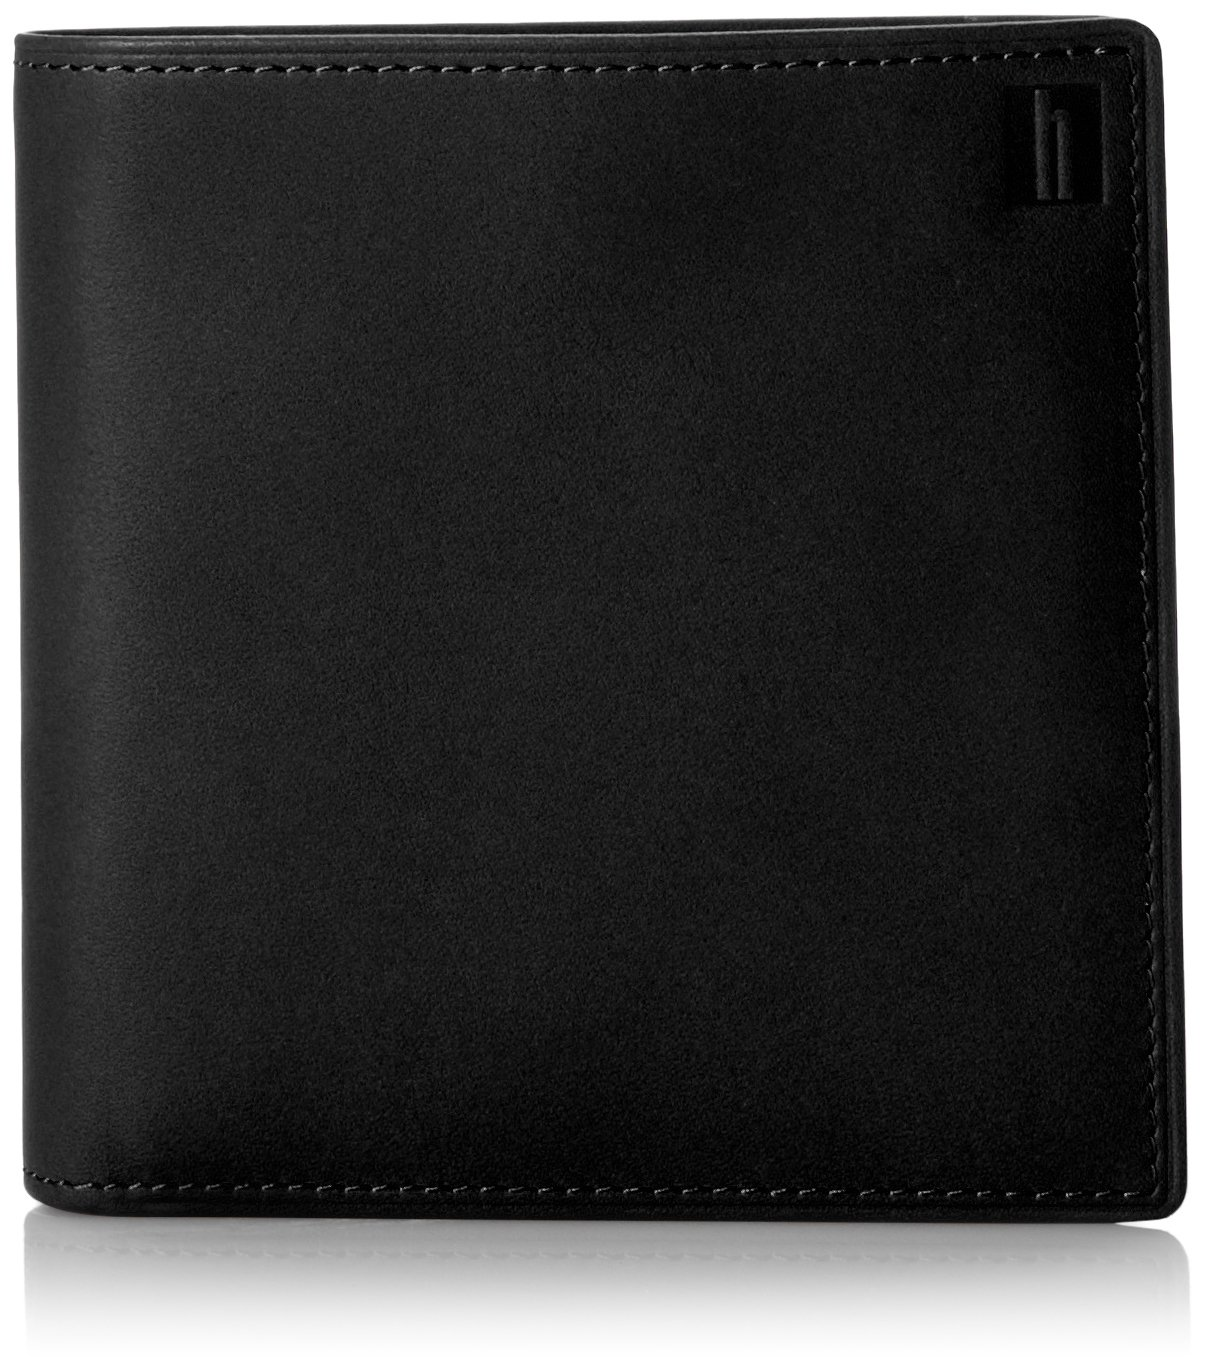 Hartmann Belting Collection Large Wallet with Removable Card Wallet, Heritage Black, One Size